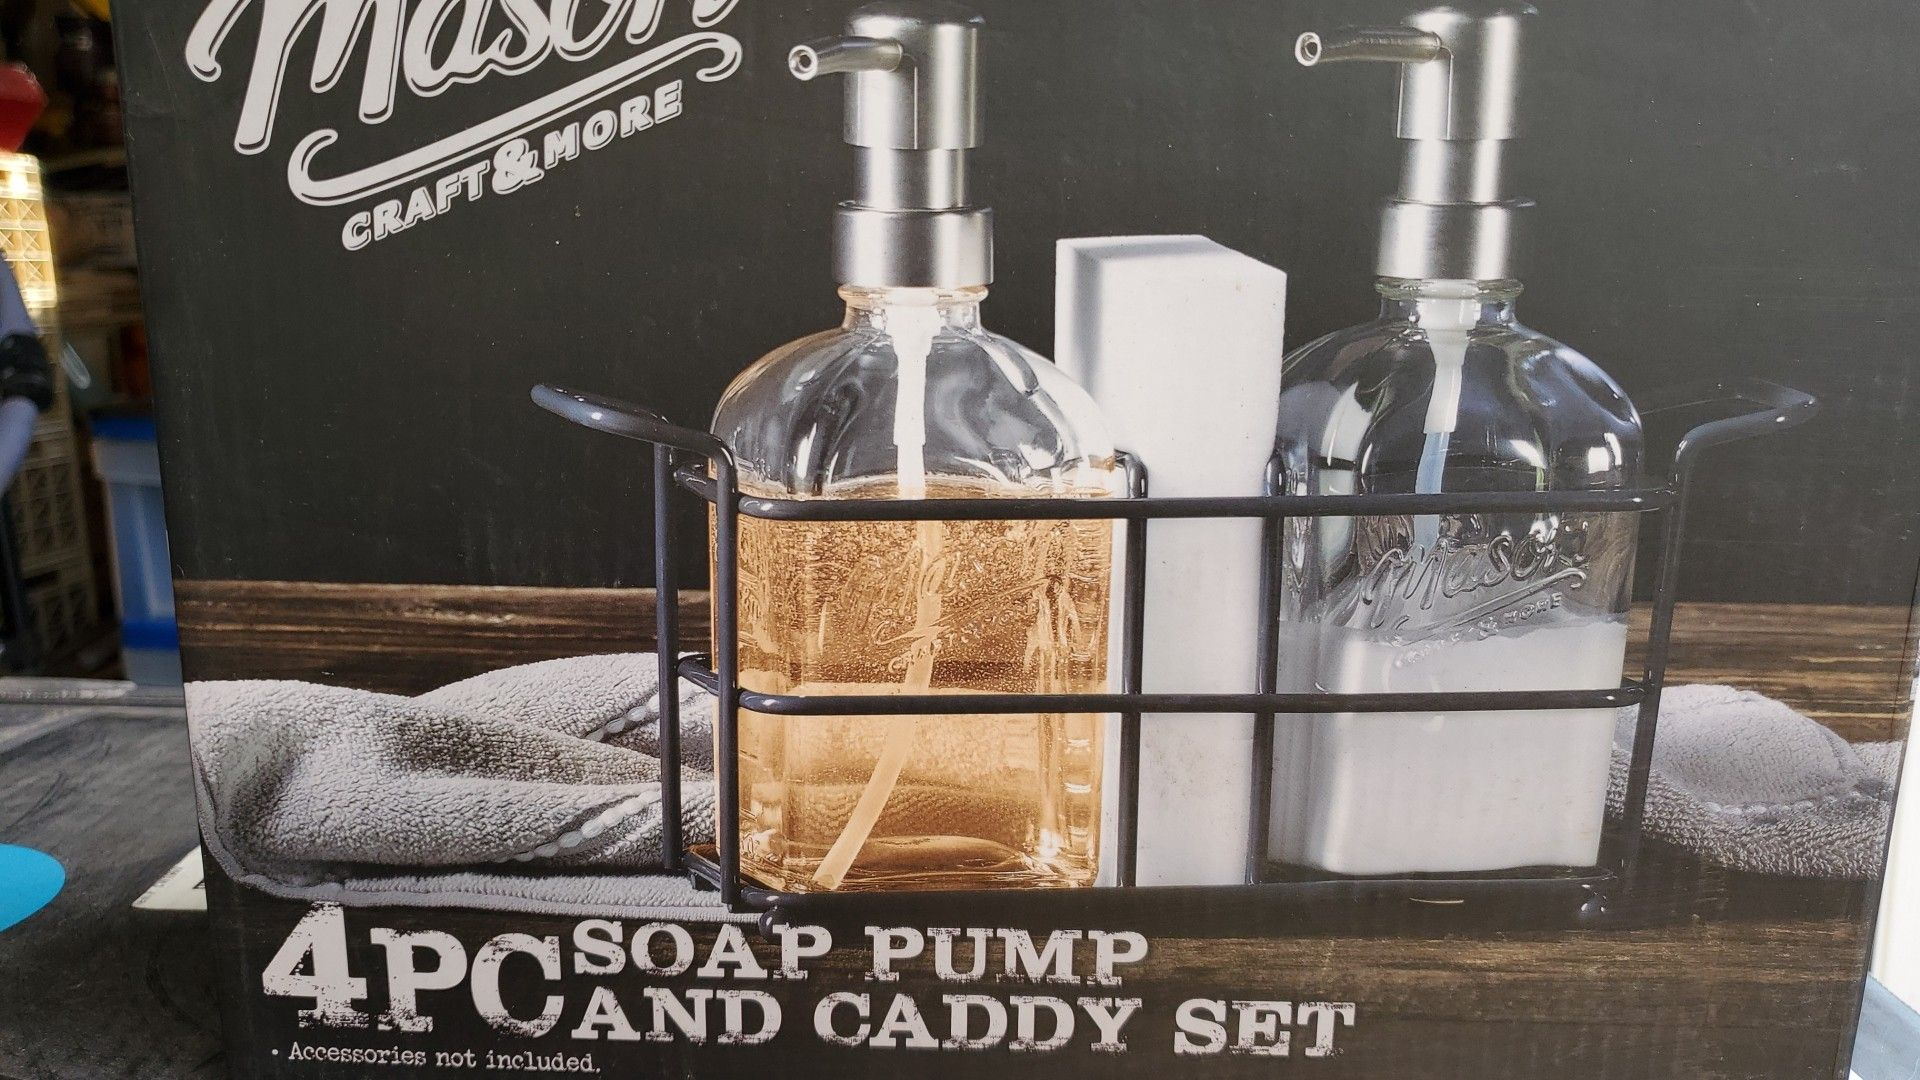 Brand New in Box Mason 4 Pc Soap Pump and Caddy set